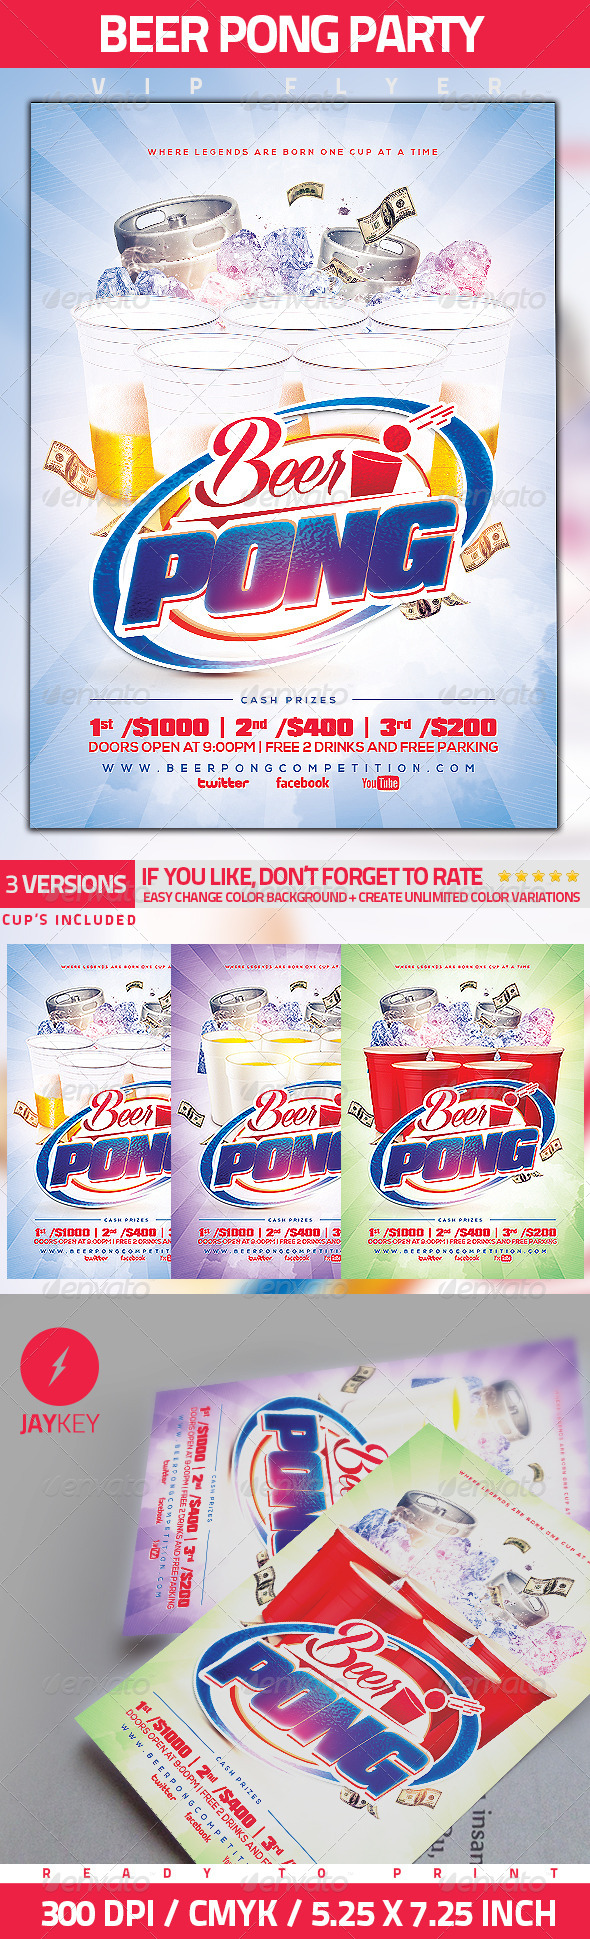 GraphicRiver Beer Pong Party Flyer 5565237